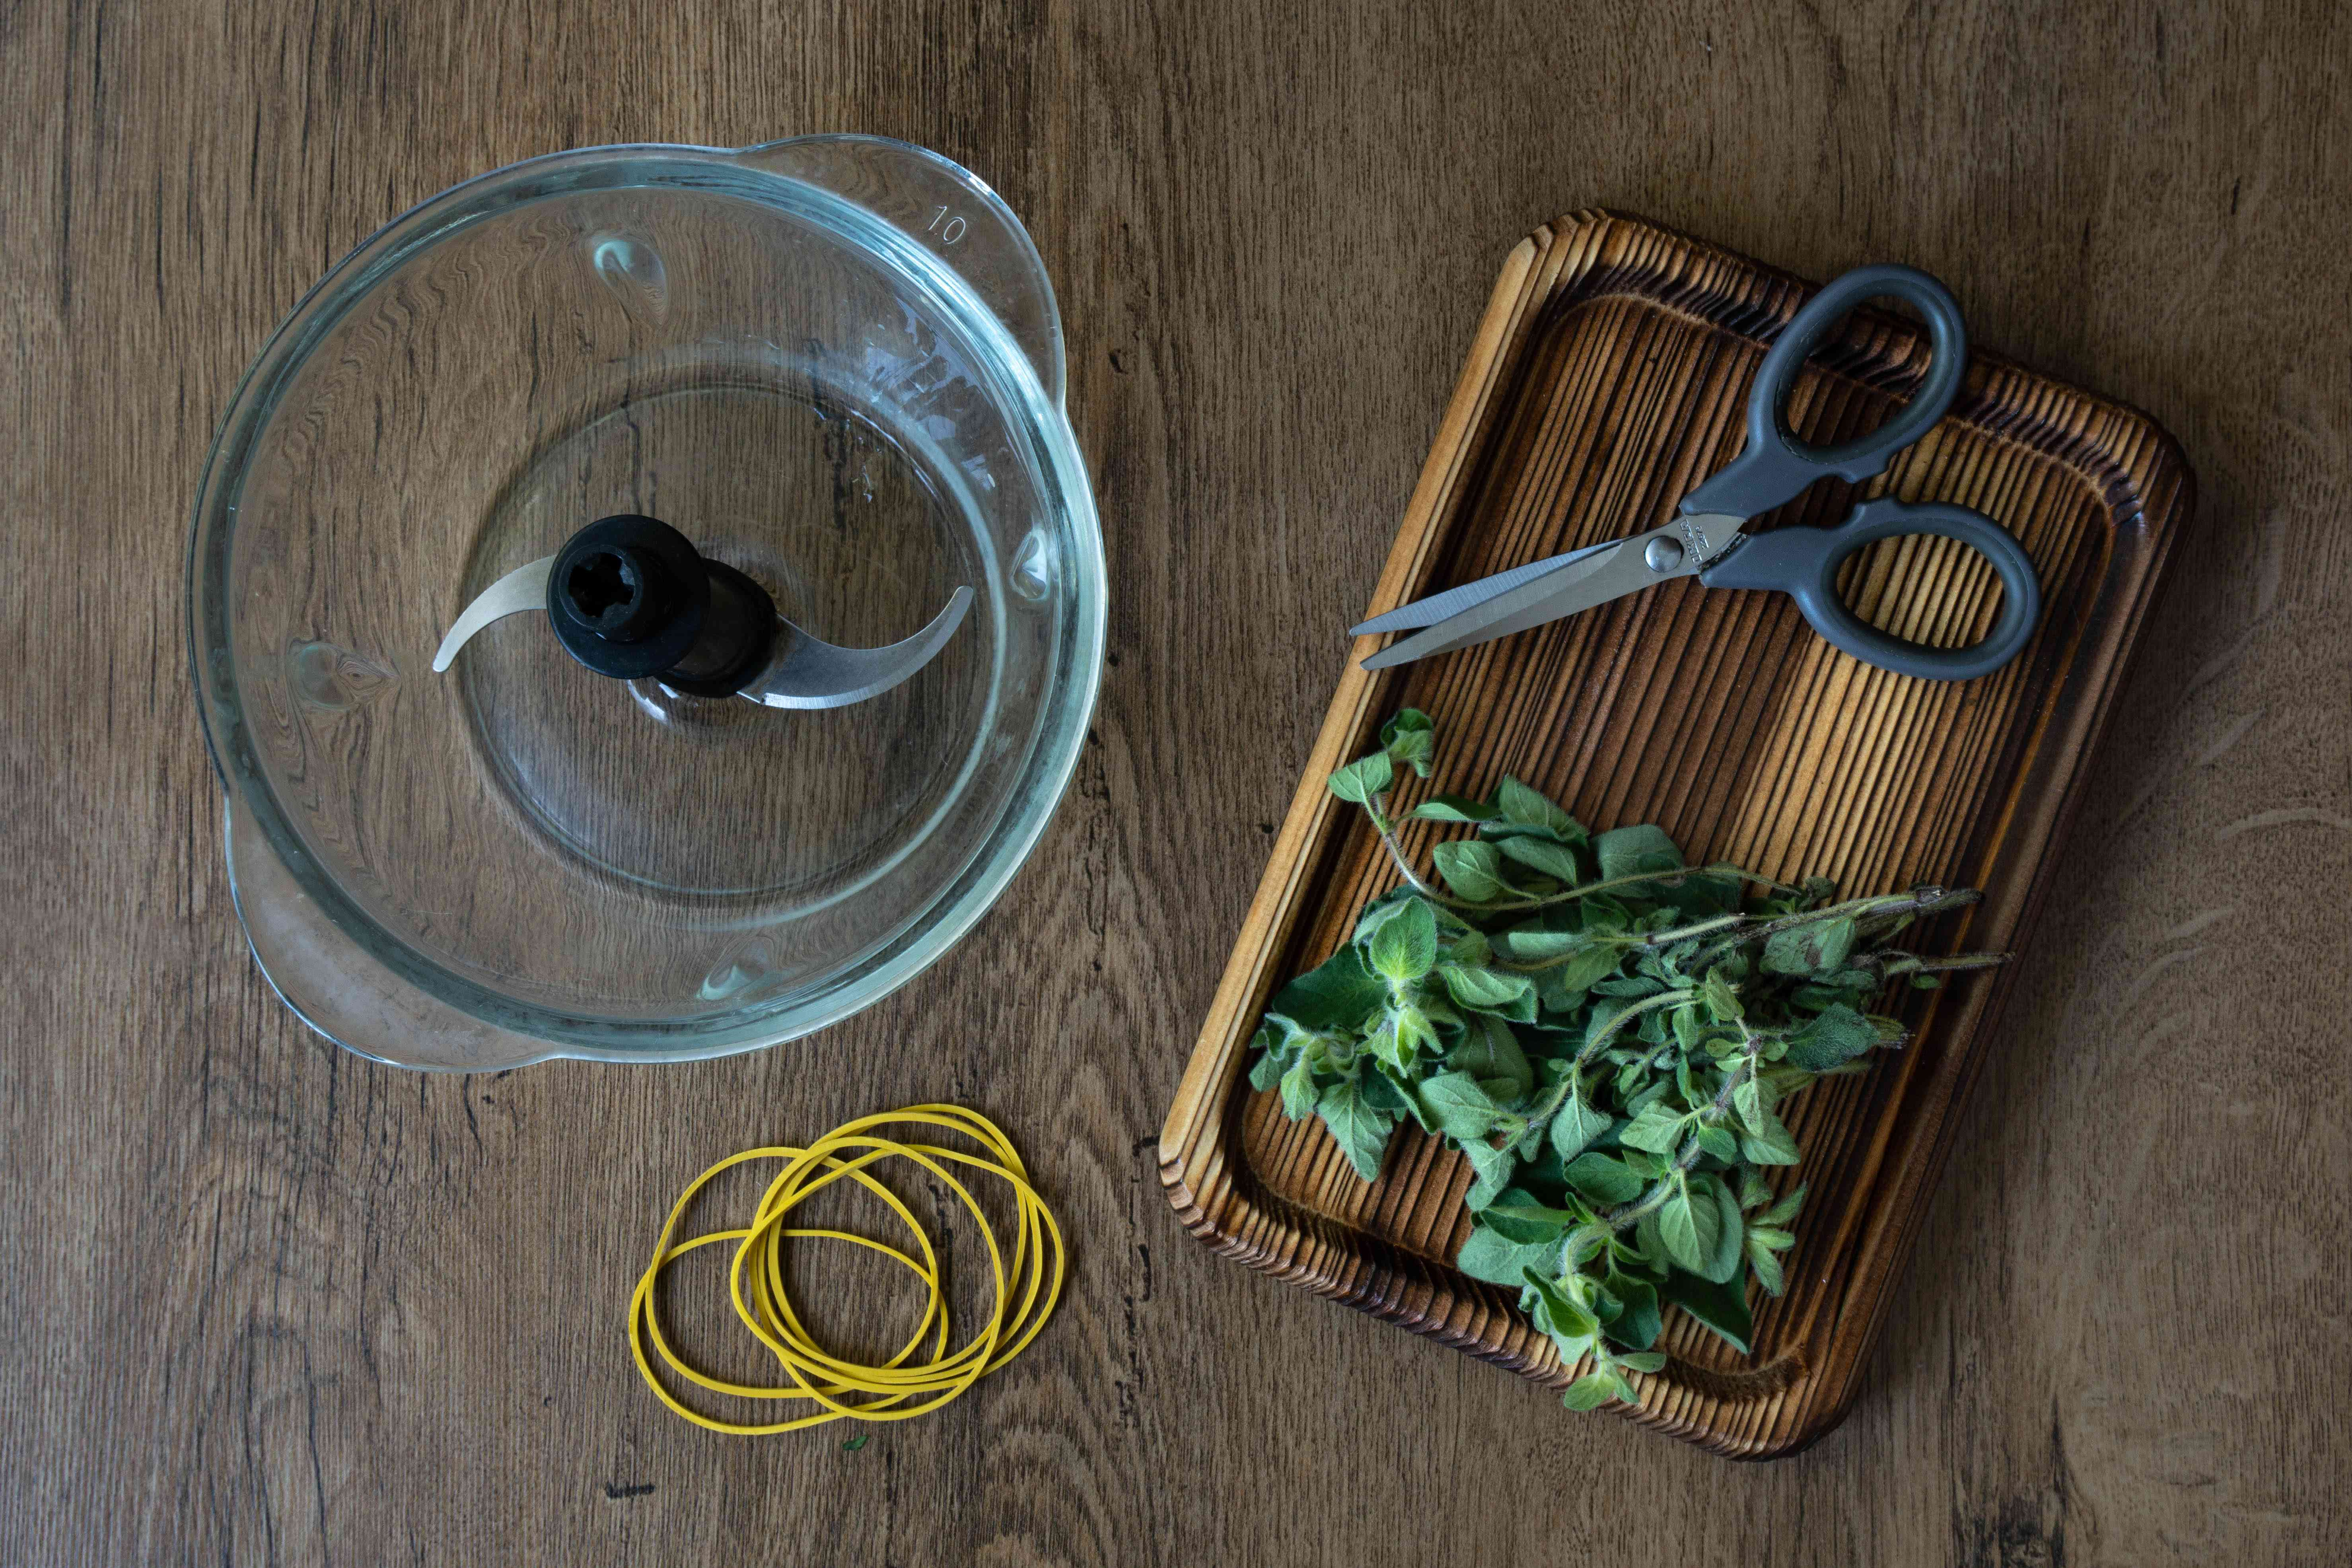 equipment needed to dry herbs includes scissors, rubber bands, and food processor